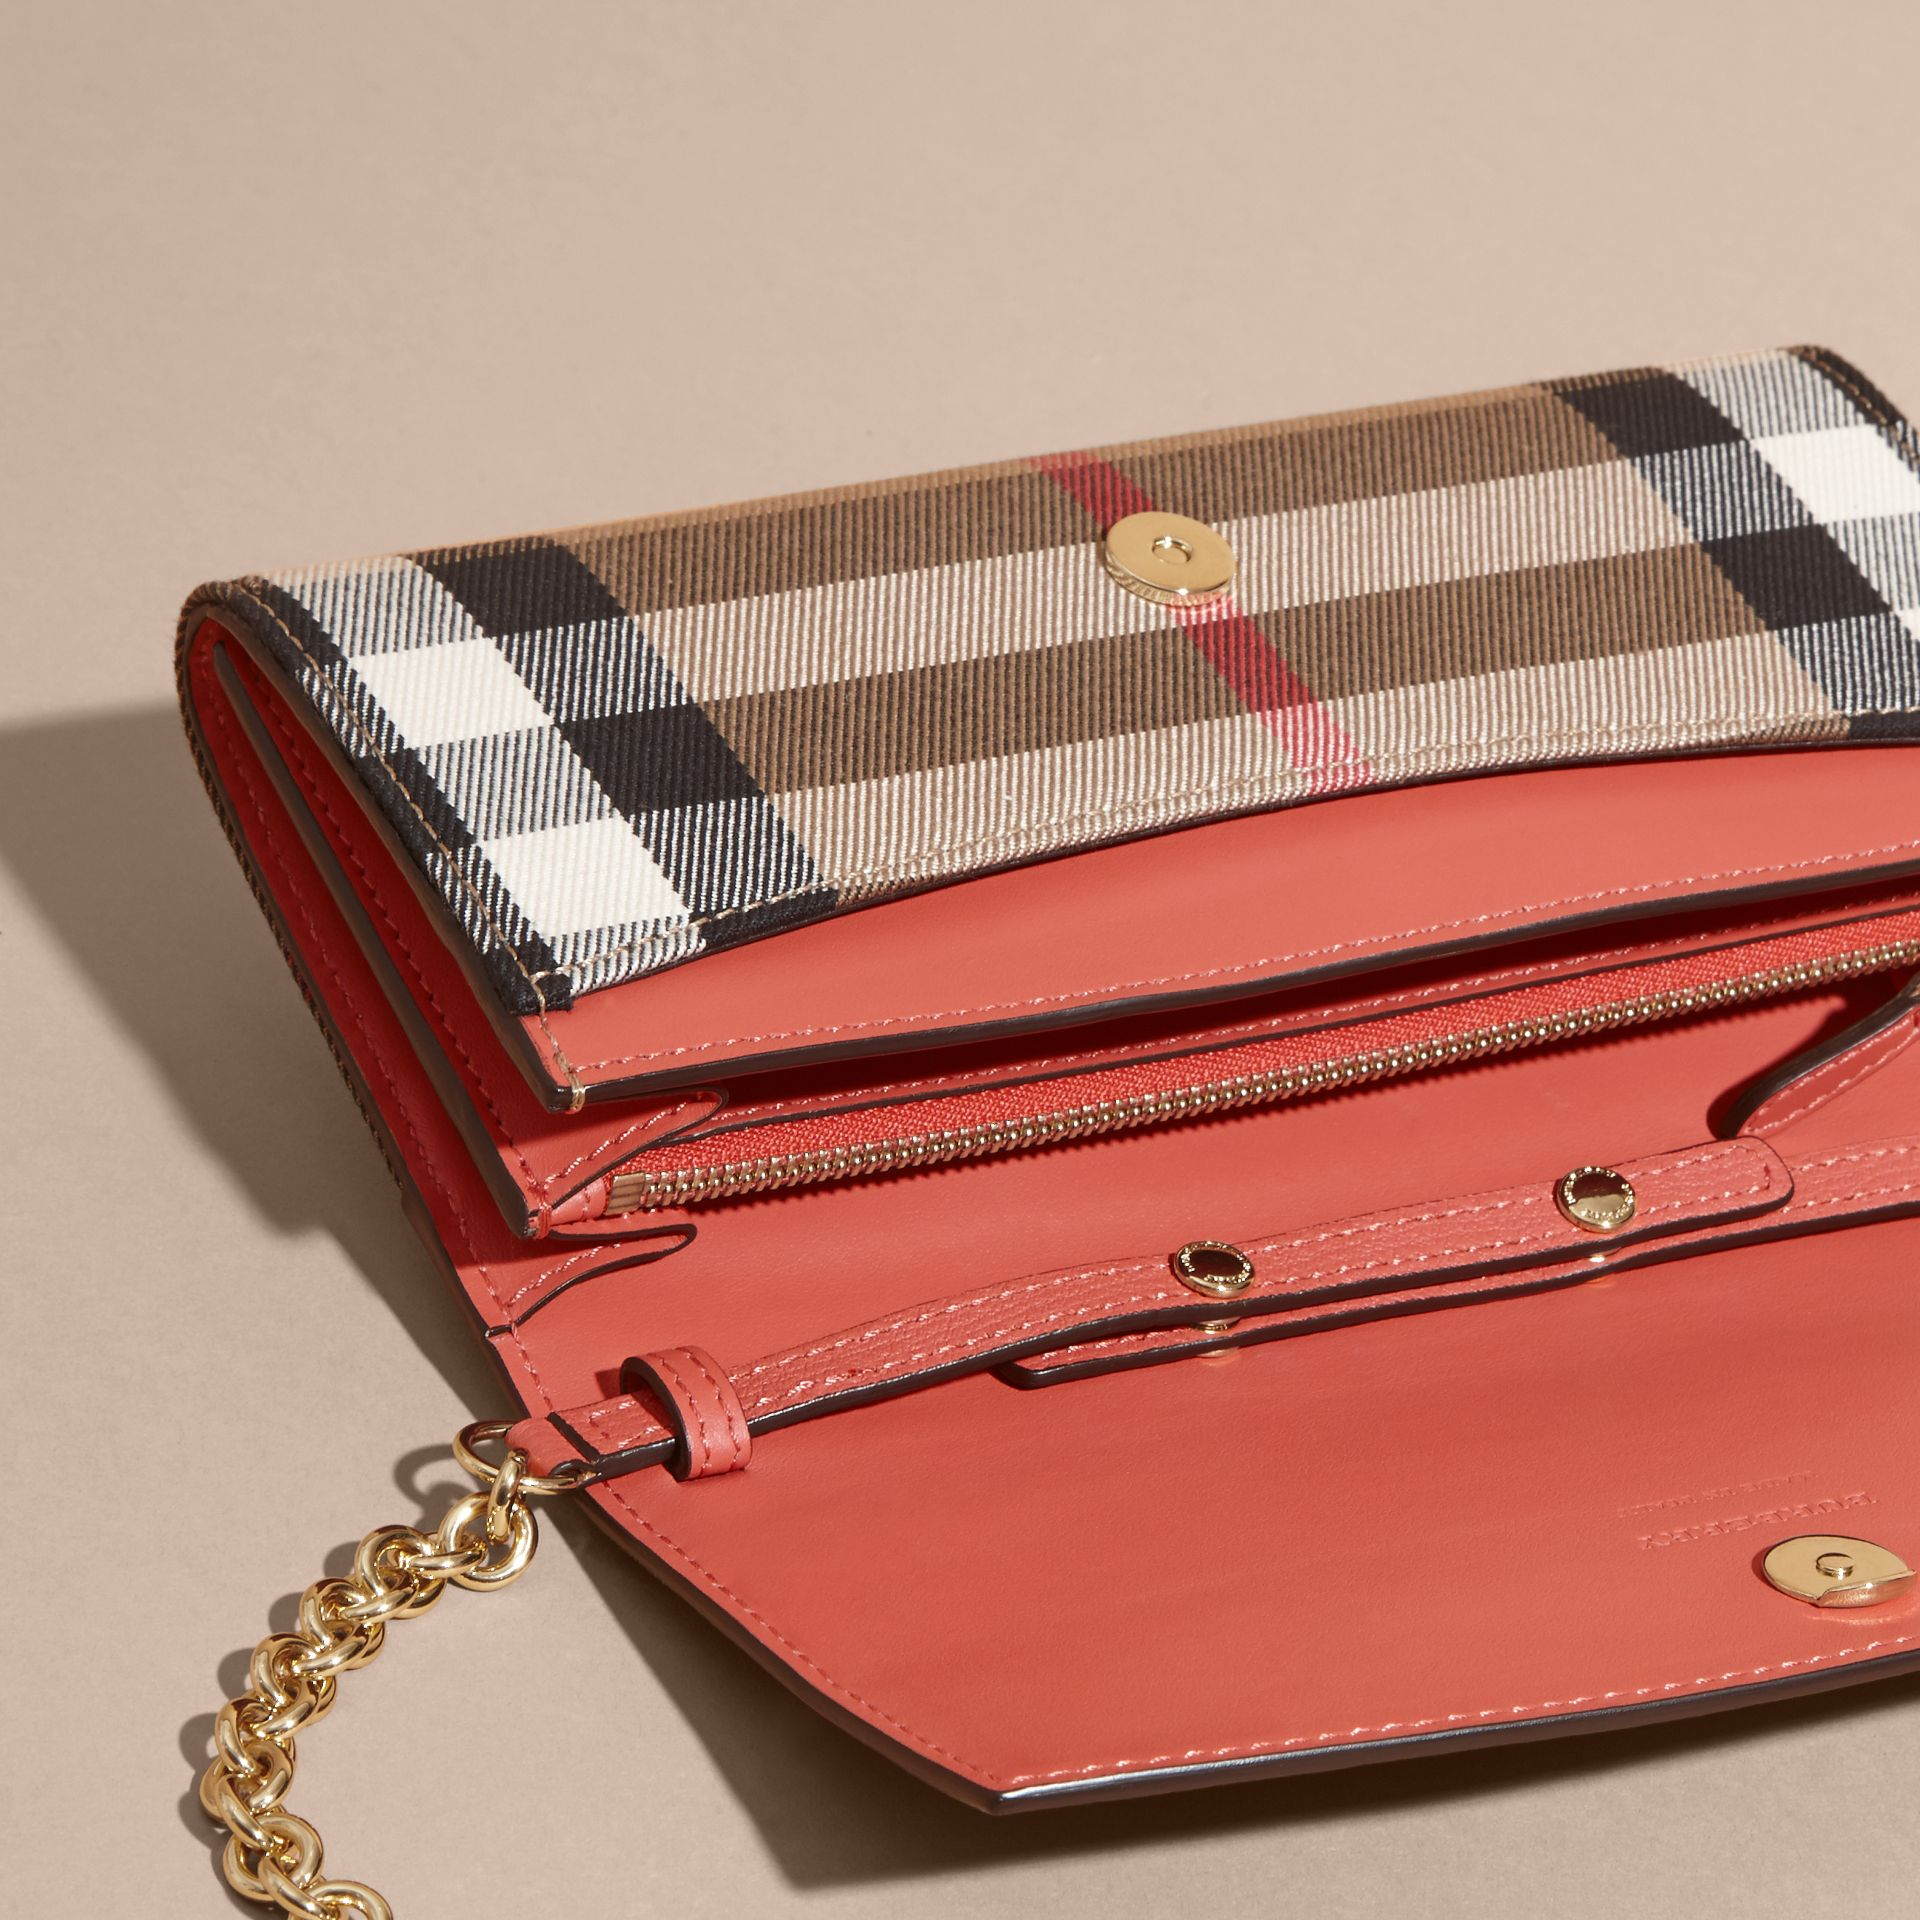 House Check and Leather Wallet with Chain in Cinnamon Red - Women | Burberry Australia - gallery image 4